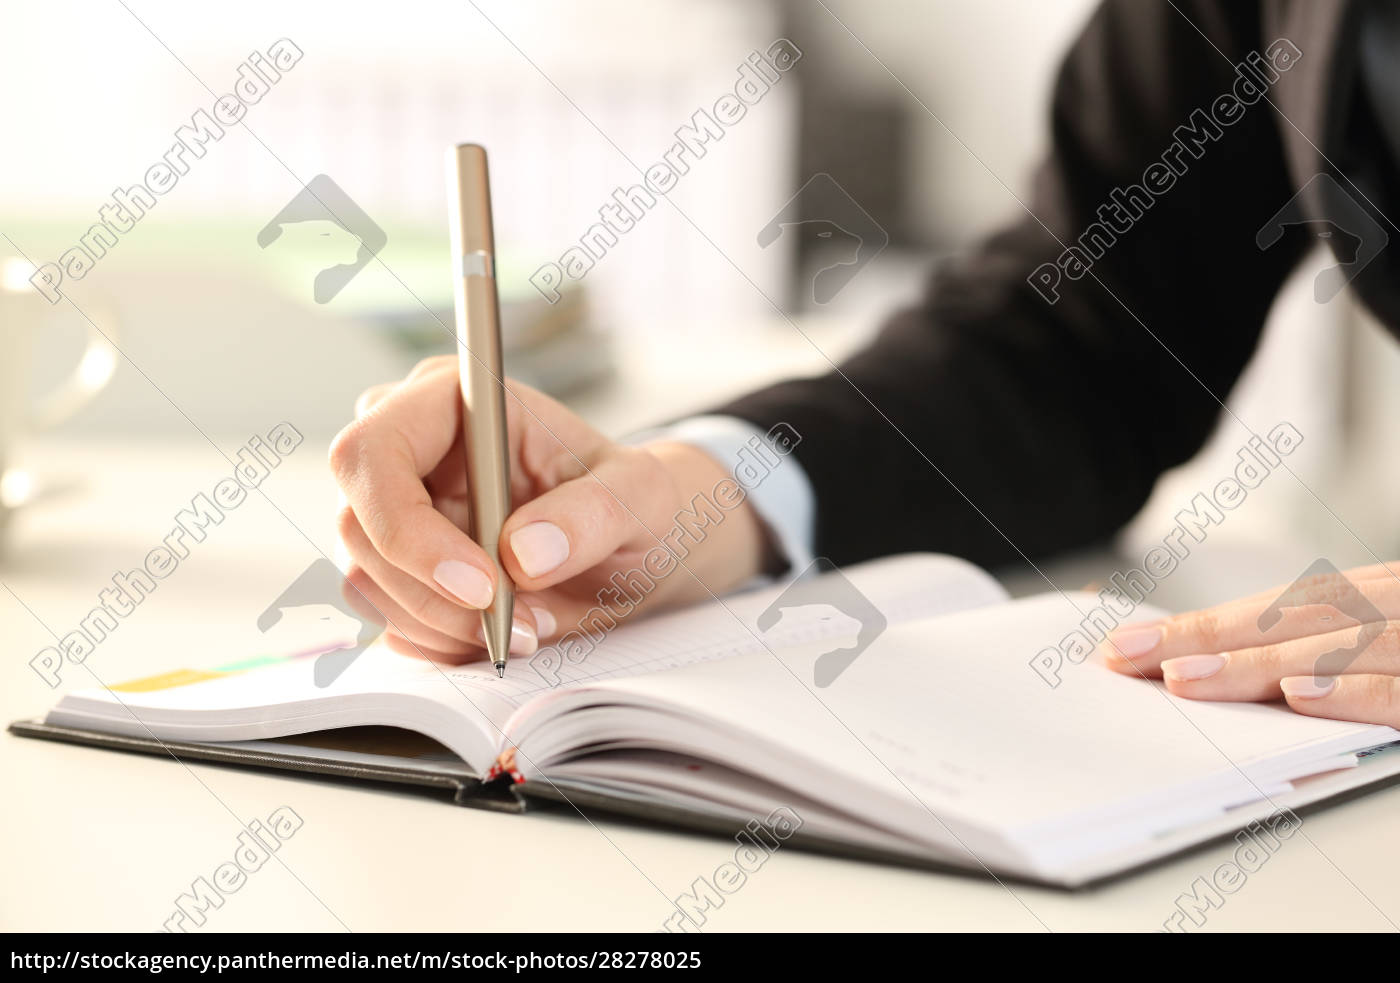 executive, woman, hands, writing, notes, on - 28278025